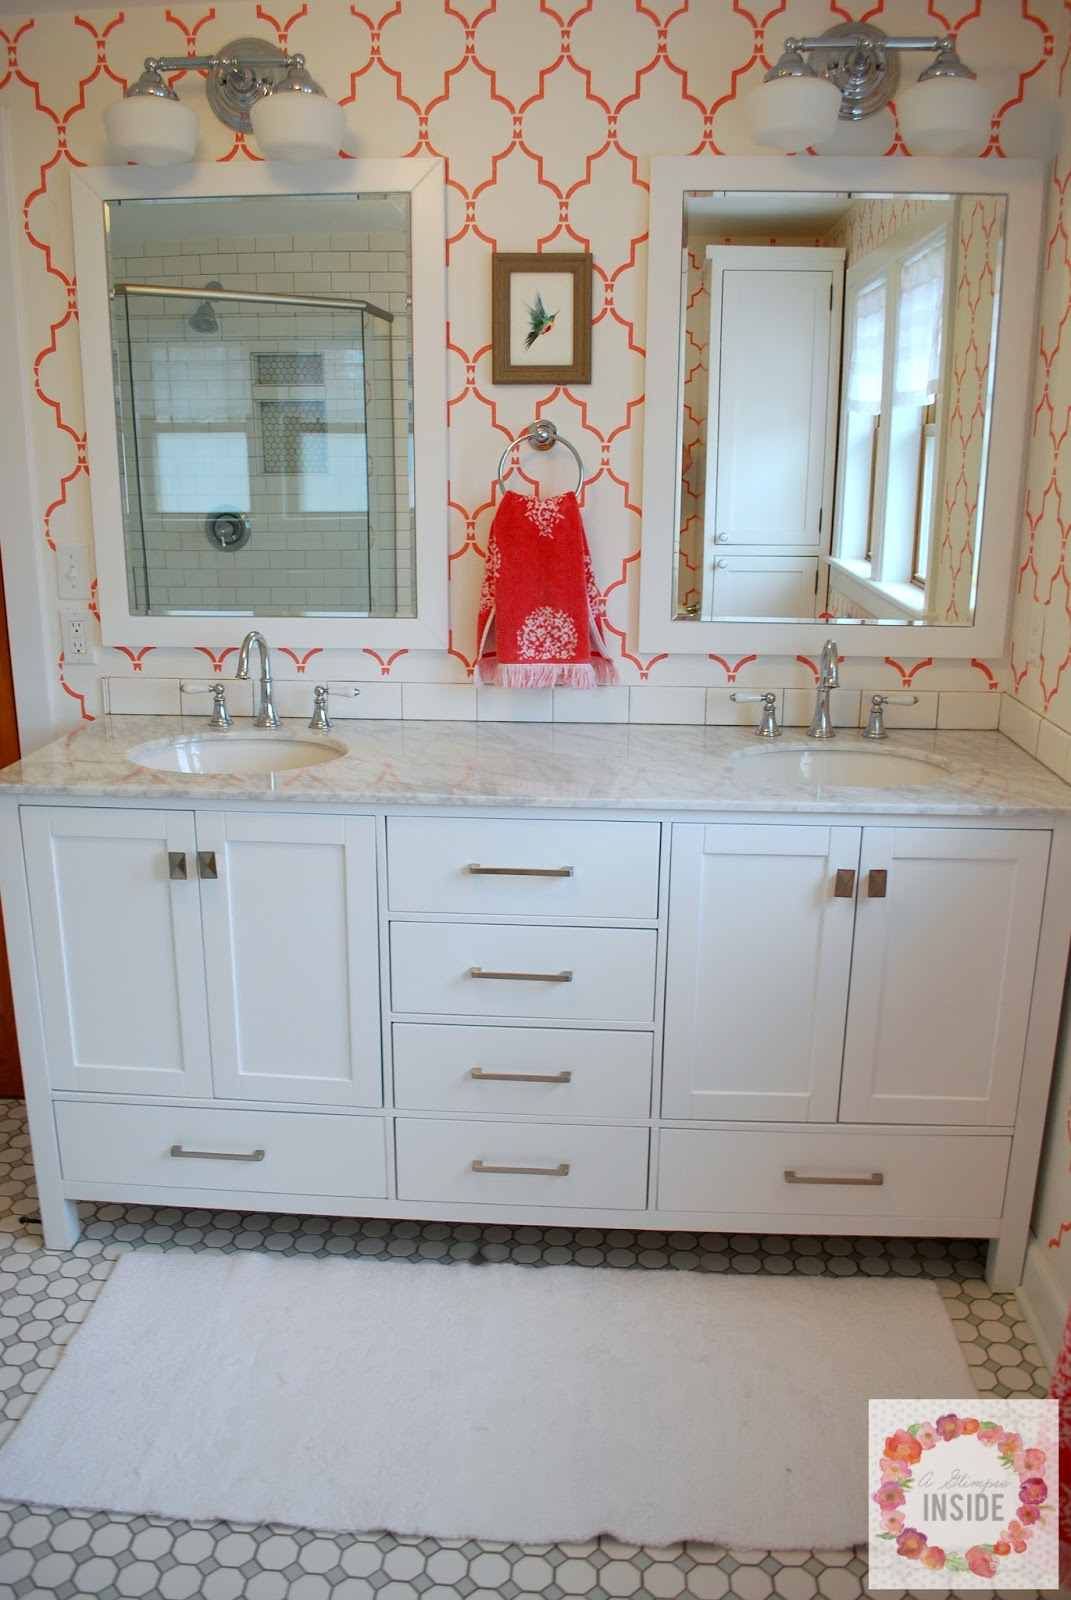 Master Bathroom Reveal | A Glimpse Inside on bathroom wall tile design ideas, wall mount mailbox design ideas, bathroom vanities product, media cabinet design ideas, linen cabinet design ideas,